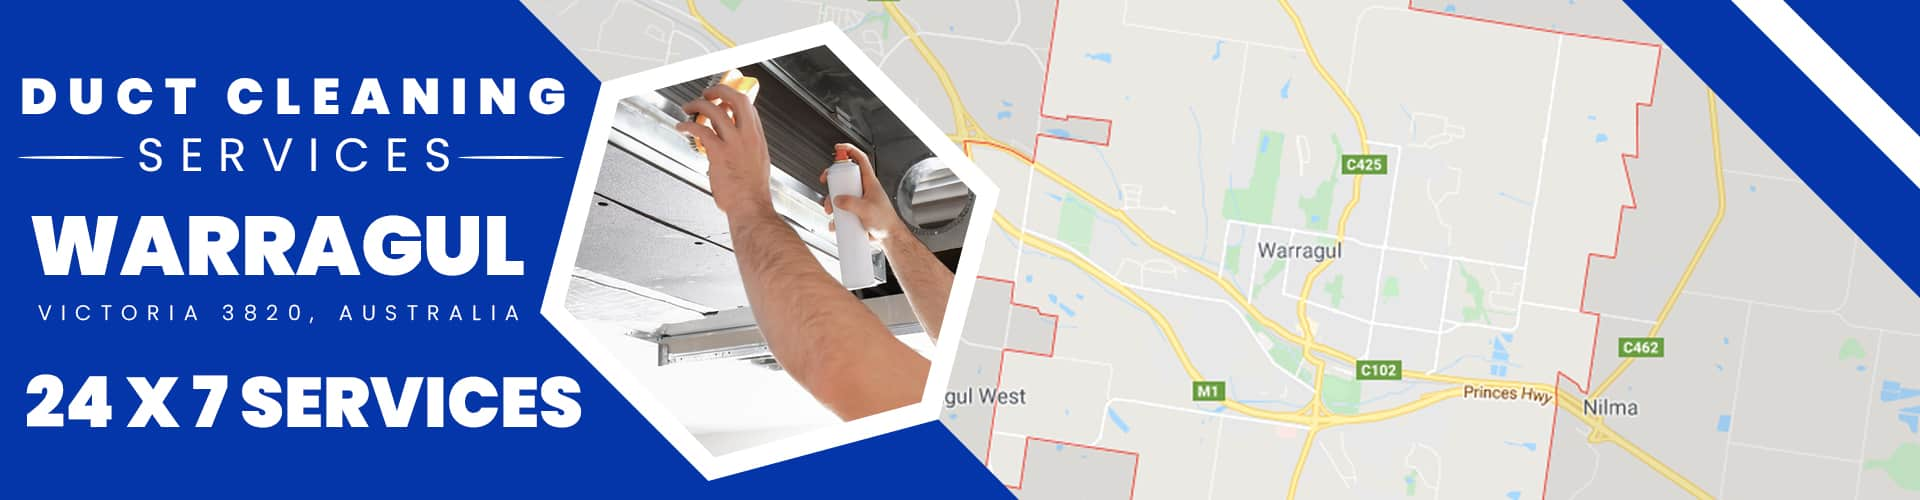 Duct Cleaning Warragul